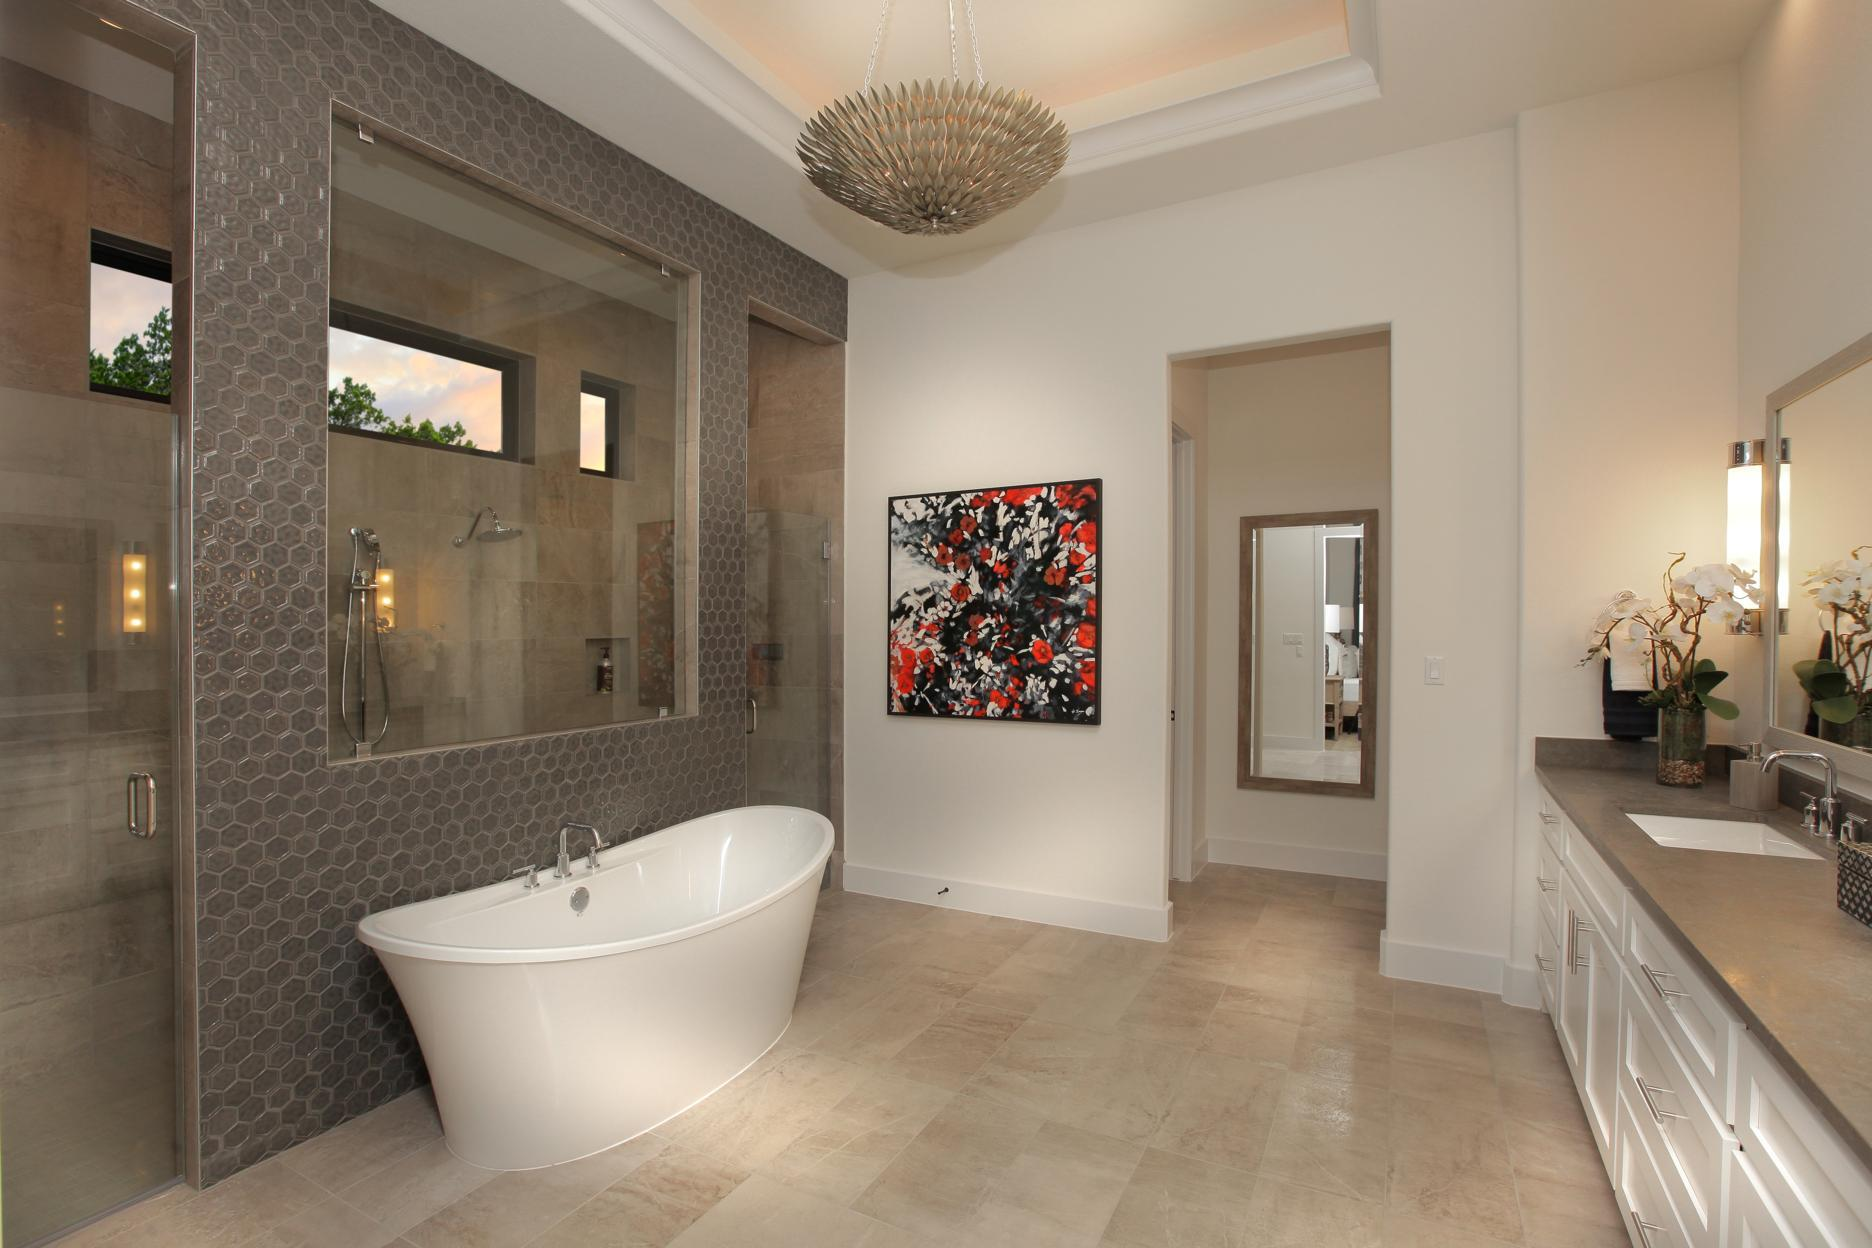 Bathroom featured in the Grantley By Drees Custom Homes in Austin, TX